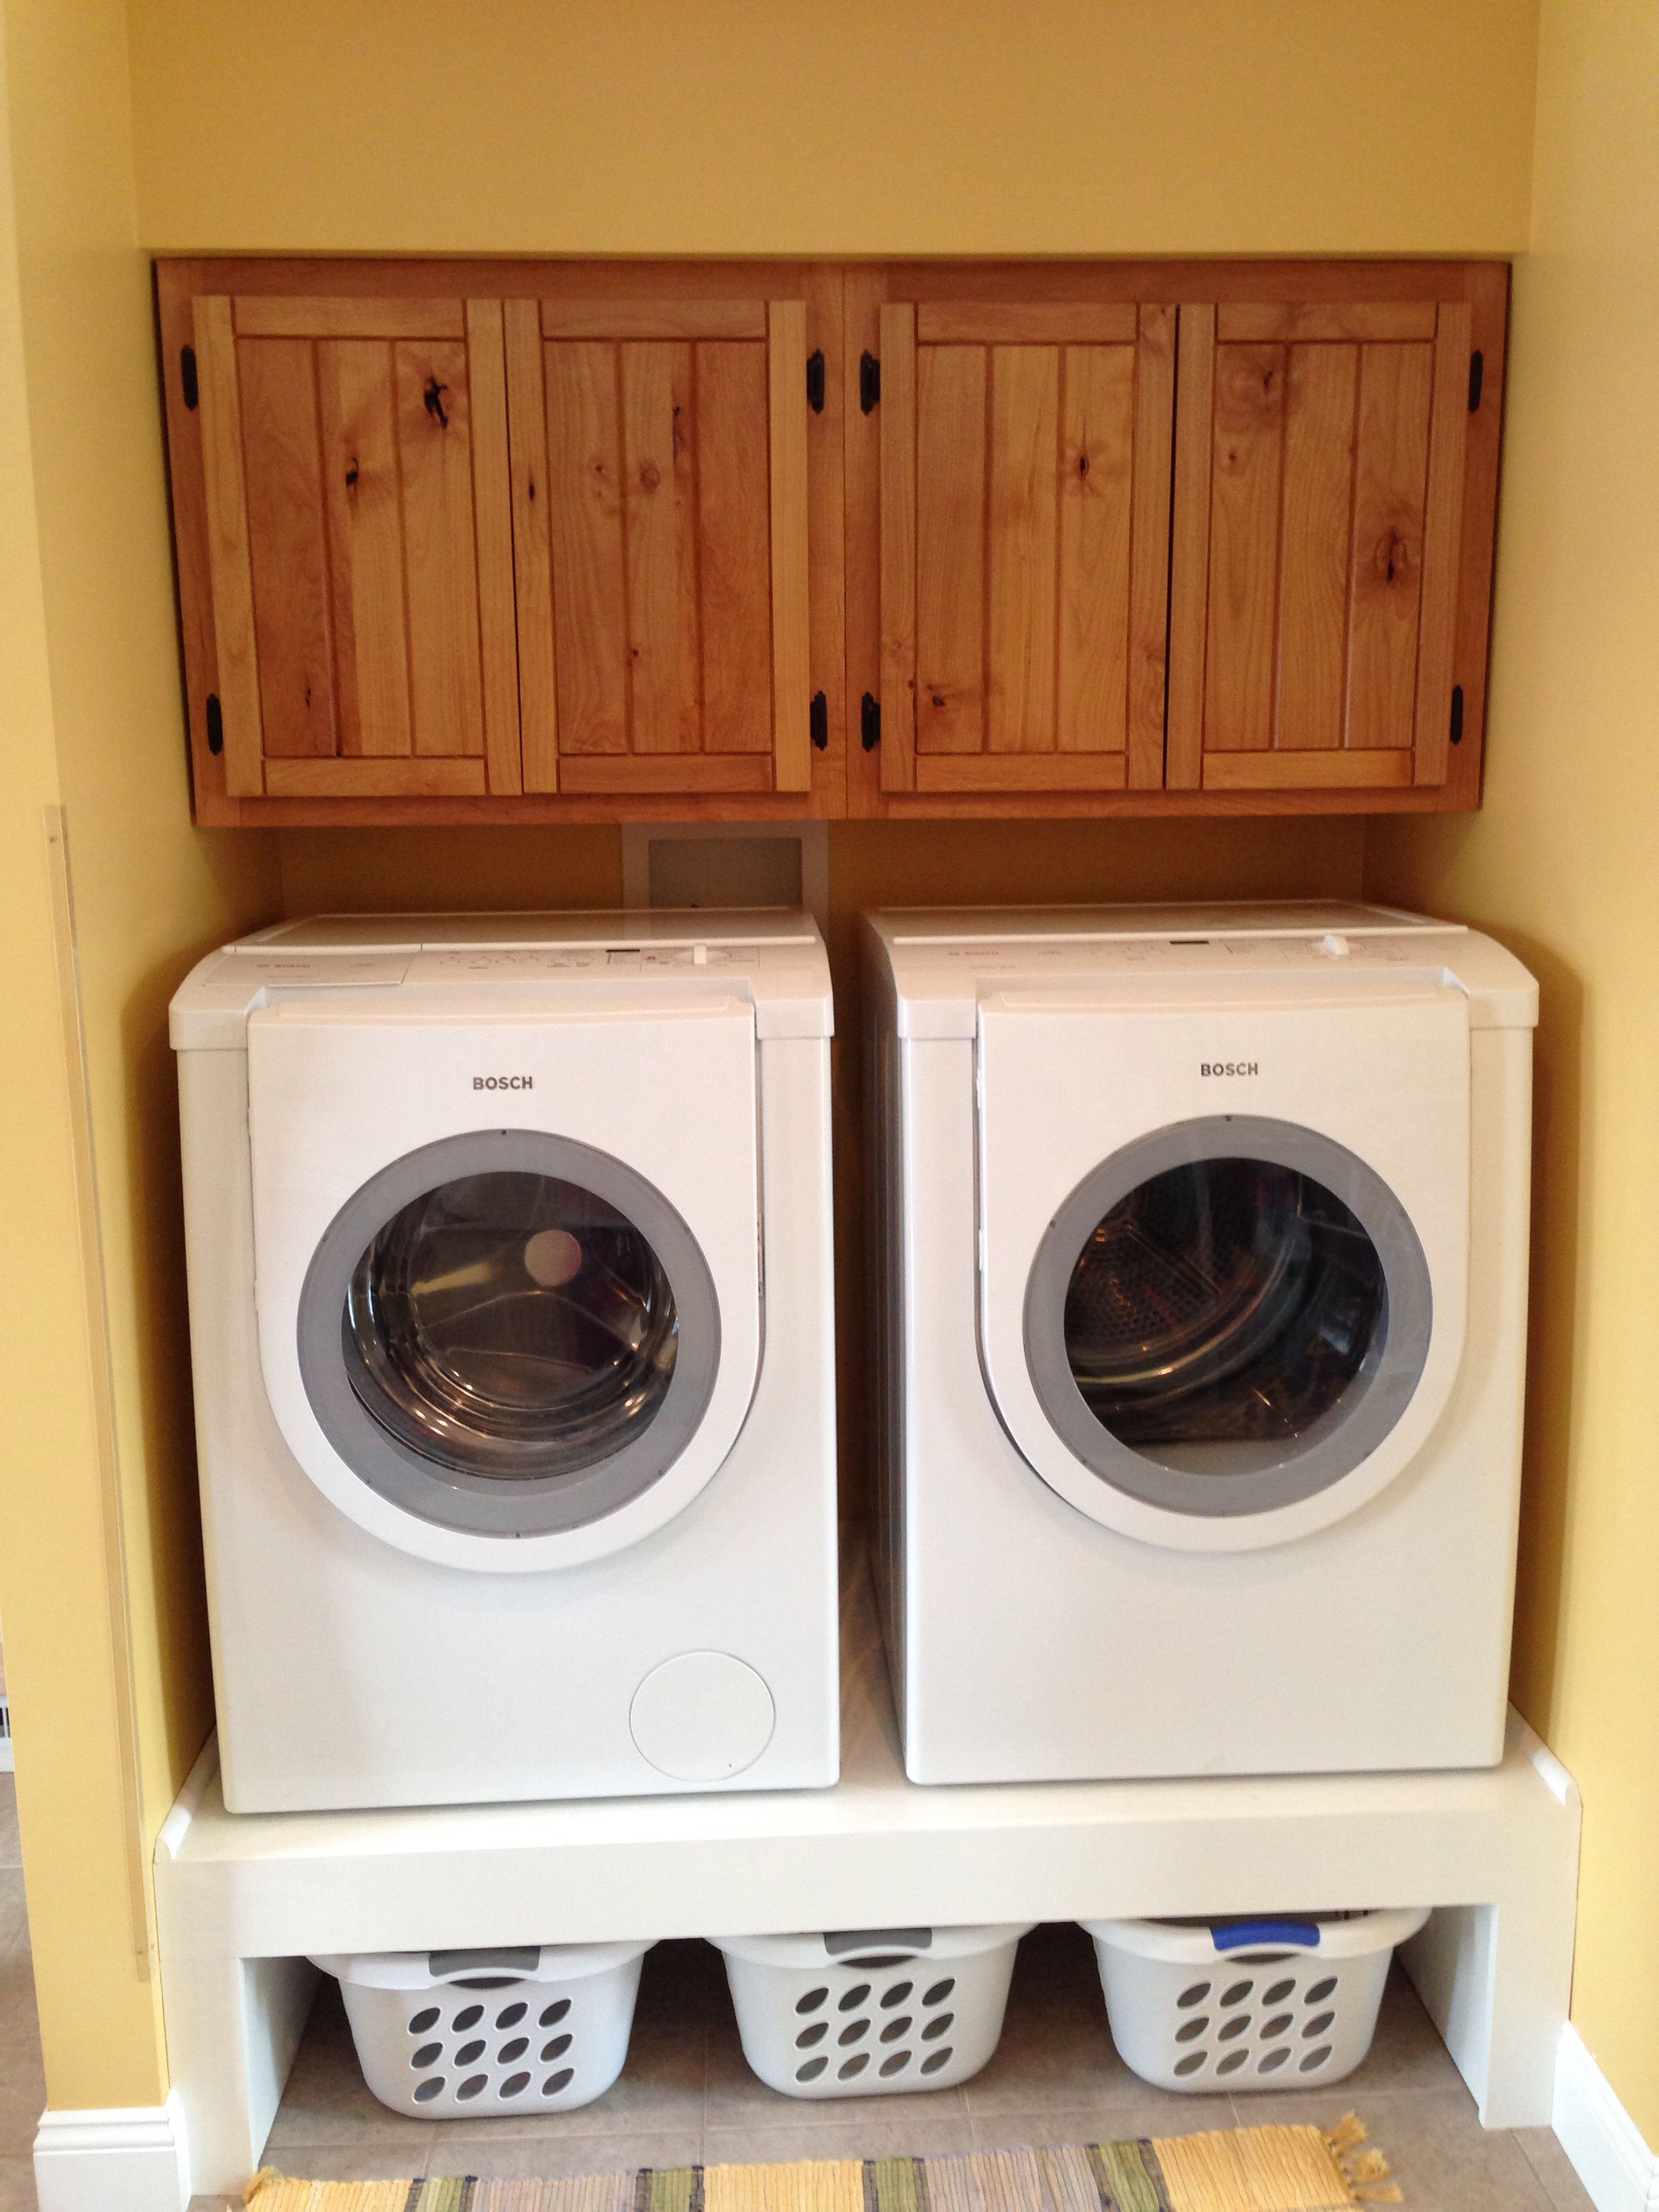 Love My Cabinets And Storage For Clothes Baskets Under The Washer